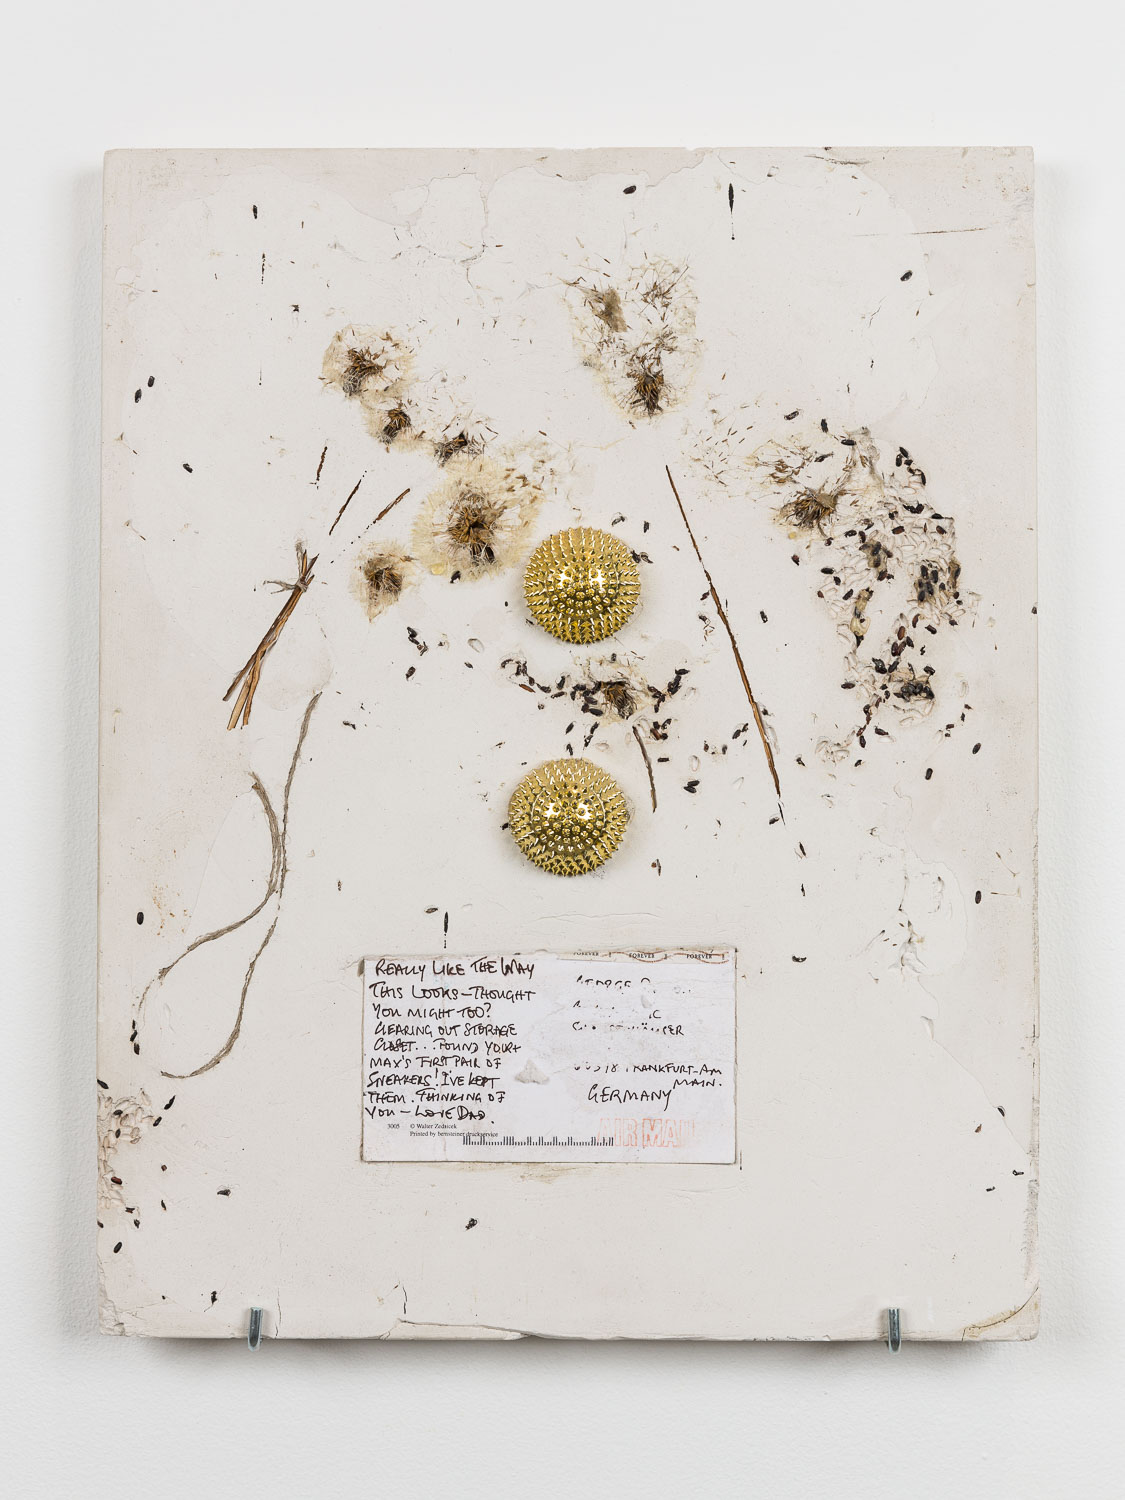 George Rippon Allergy Allegory, 2015 Dandelion, black rice, anti-stress hand massage ball, postcard, plaster 47 x 37 cm 18 1/2 x 14 5/8 ins. Now Panic , George Rippon